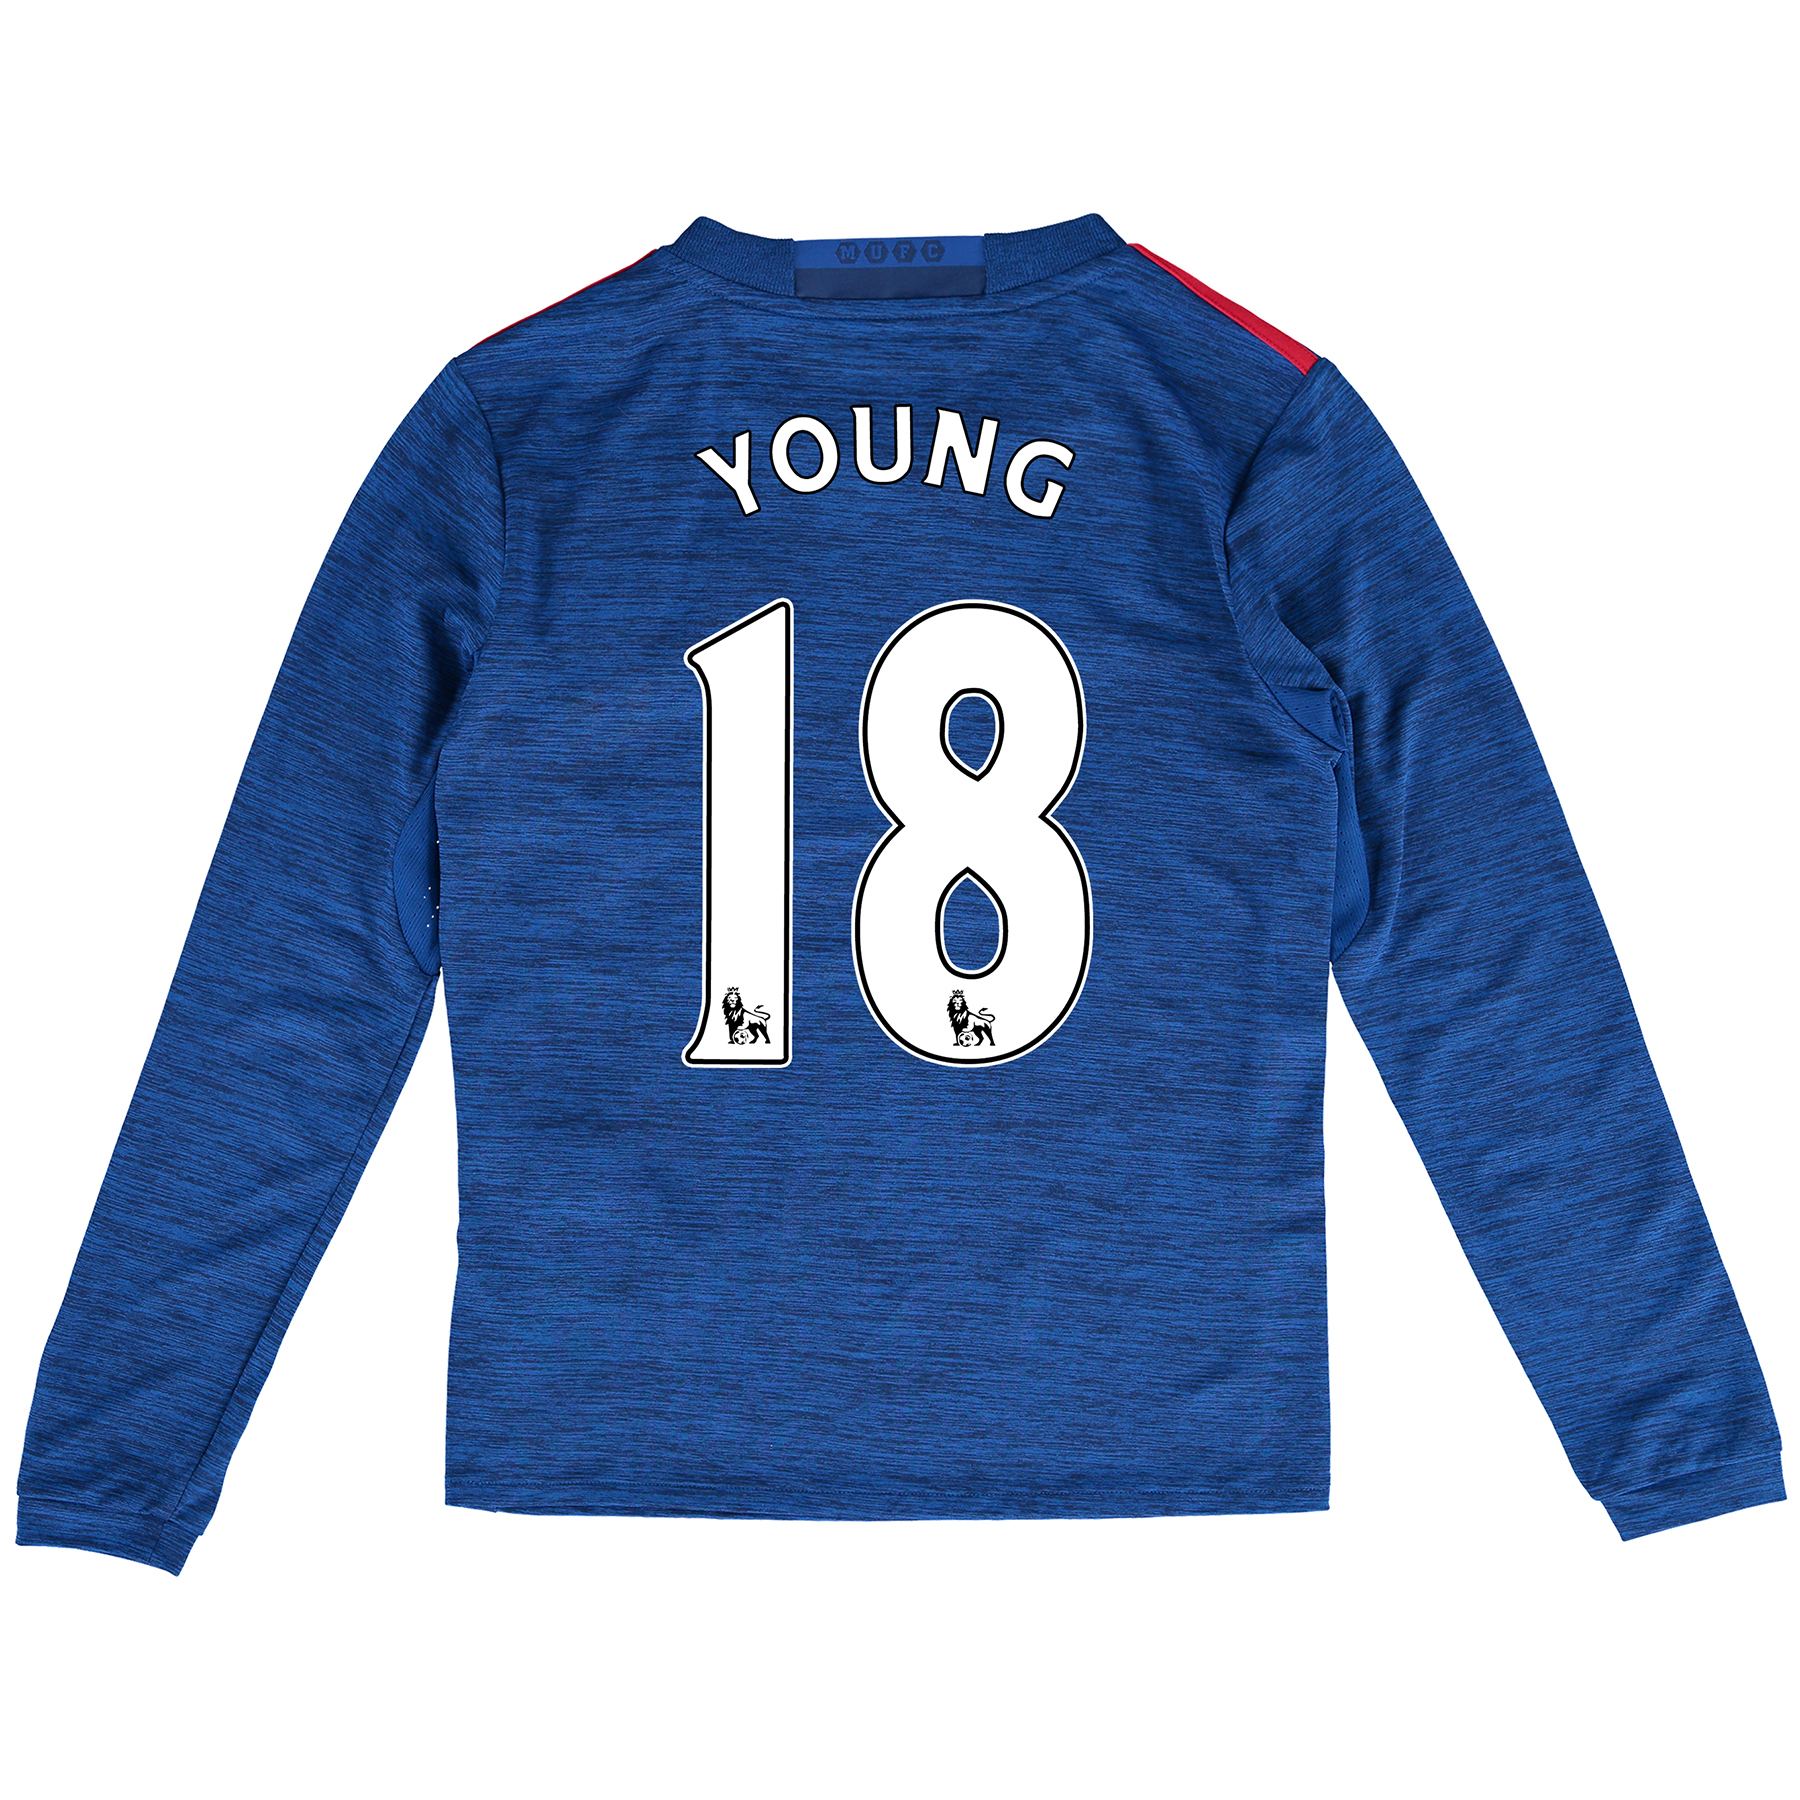 Manchester United Away Shirt 2016-17 - Kids - Long Sleeve with Young 1